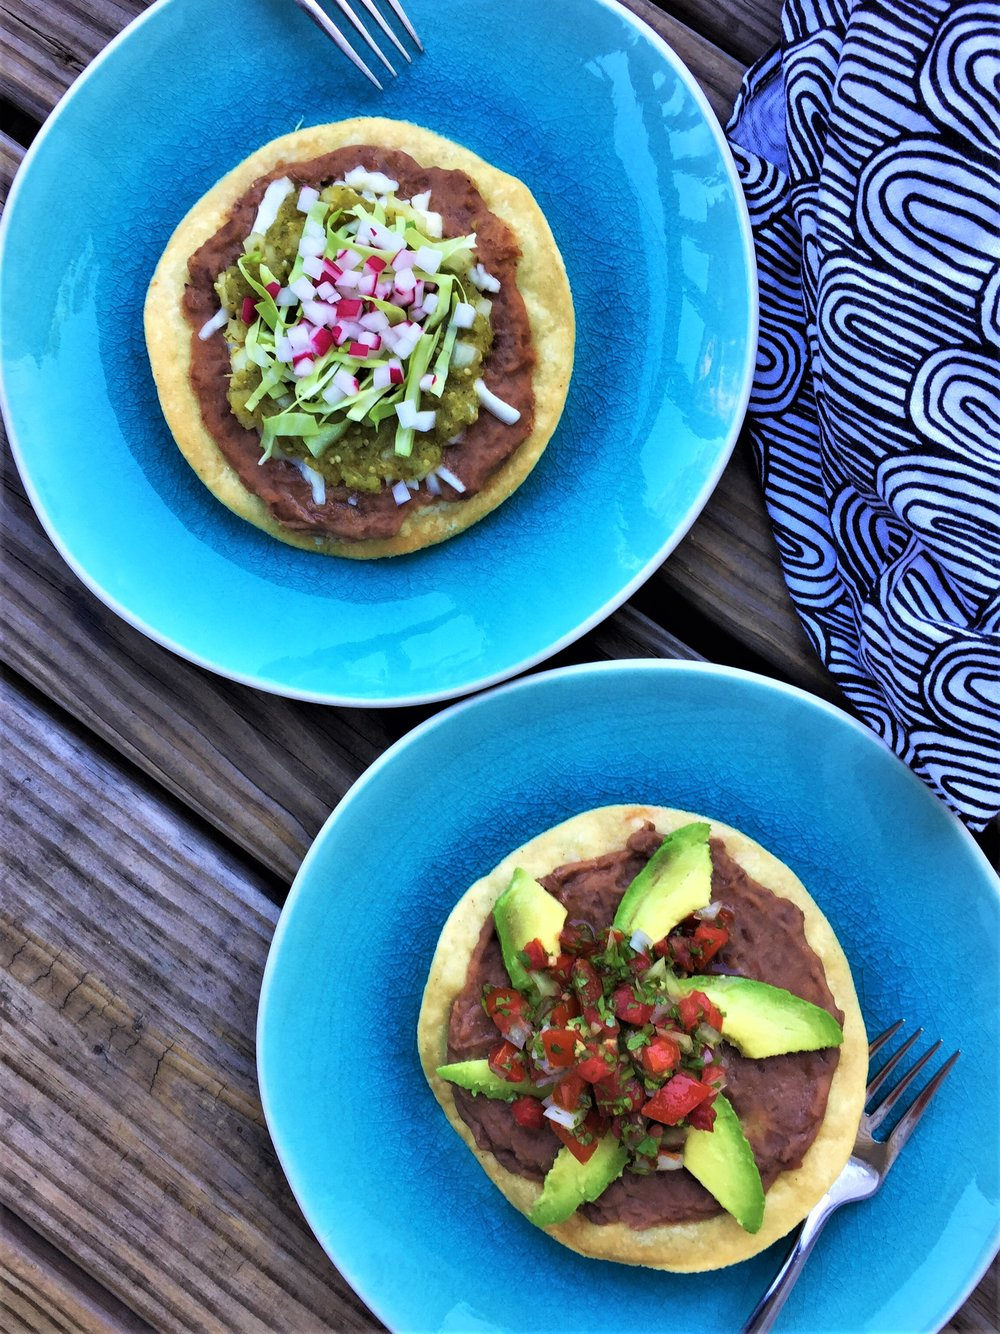 Tostada with Roasted Tomatillo Salsa  (top), and  Tostada with Avocados and Pico de Gallo  in the Adventure Kitchen.